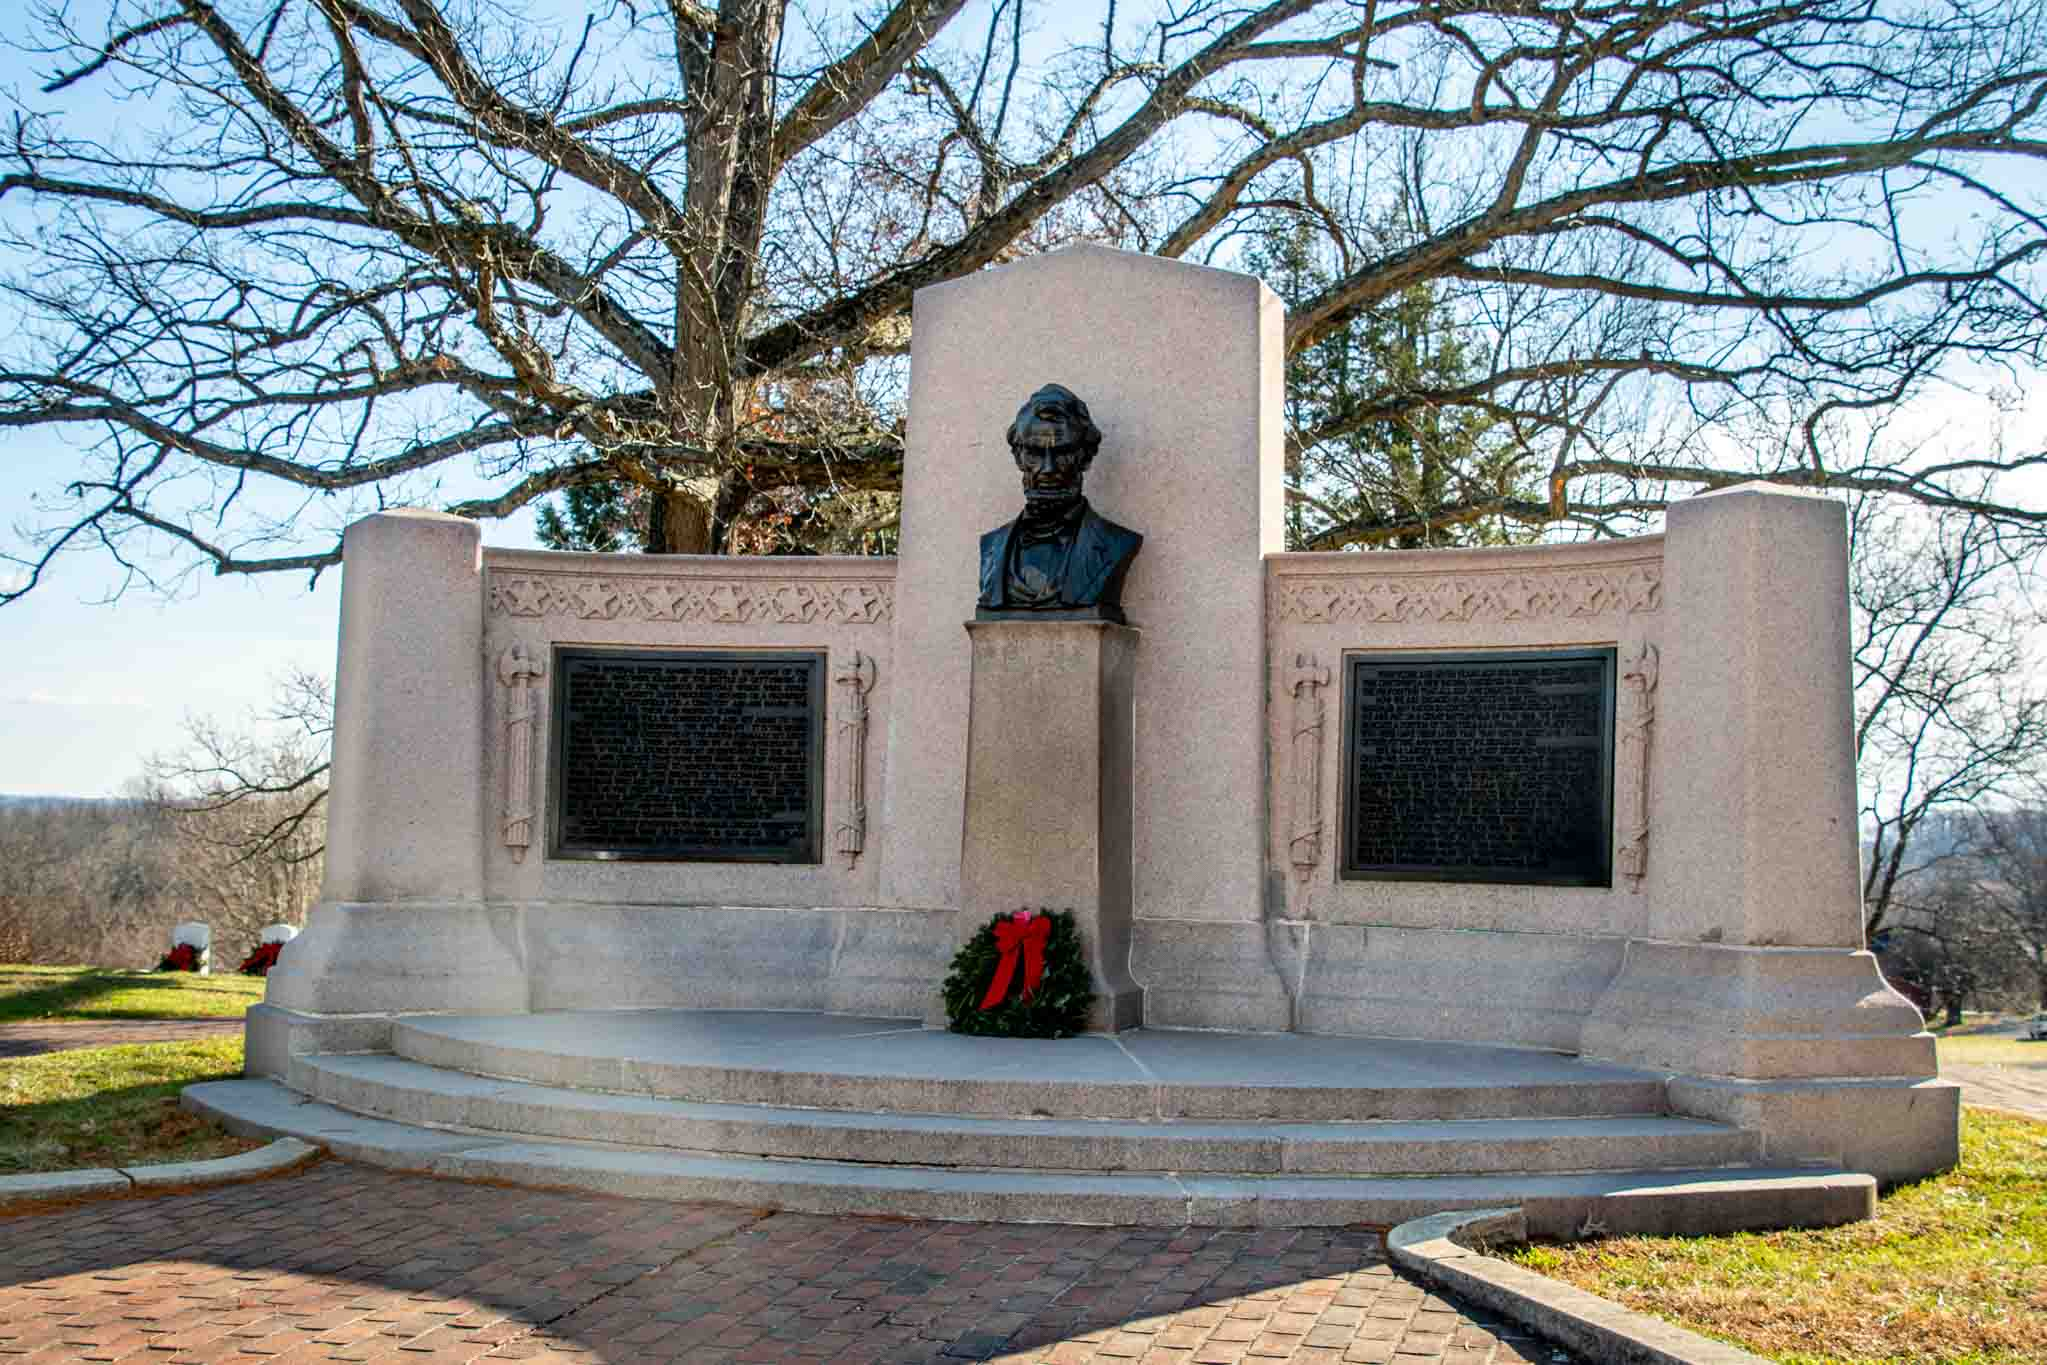 Stone memorial featuring a bust of President Abraham Lincoln commemmorates the site of the Gettysburg Address at the Gettysburg National Military Park